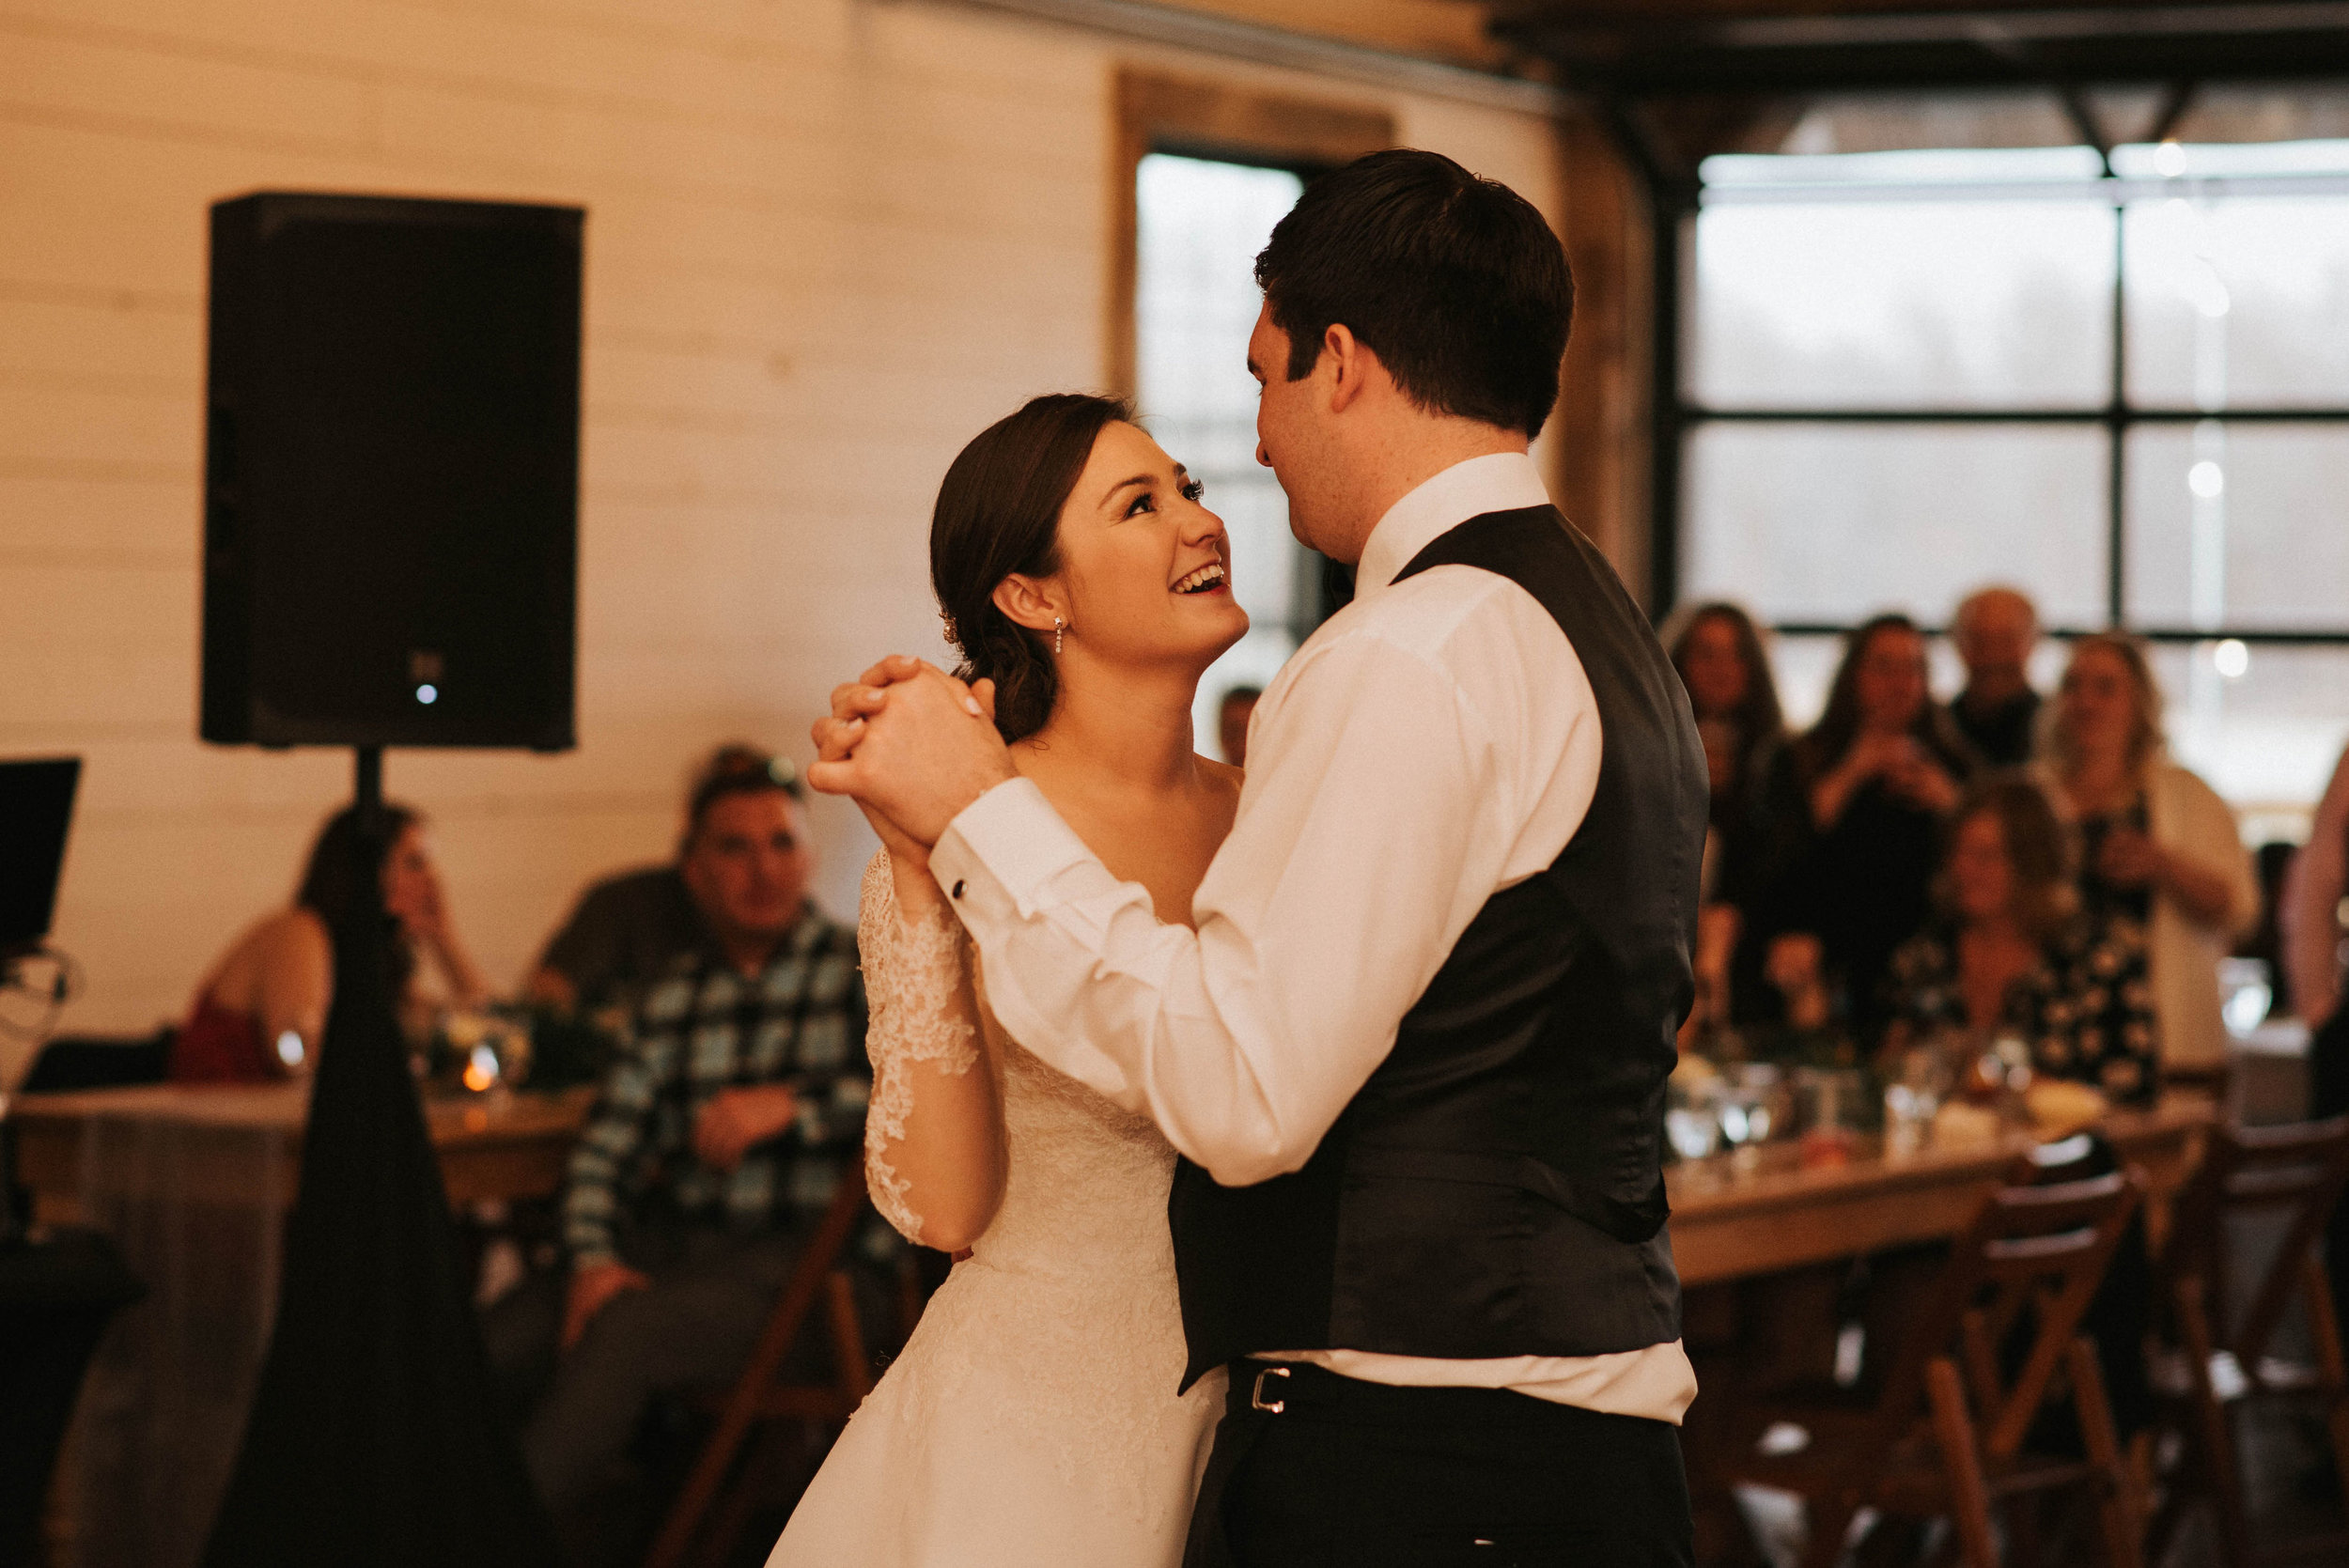 Kaitlin and Andrew share their first dance as a married couple.